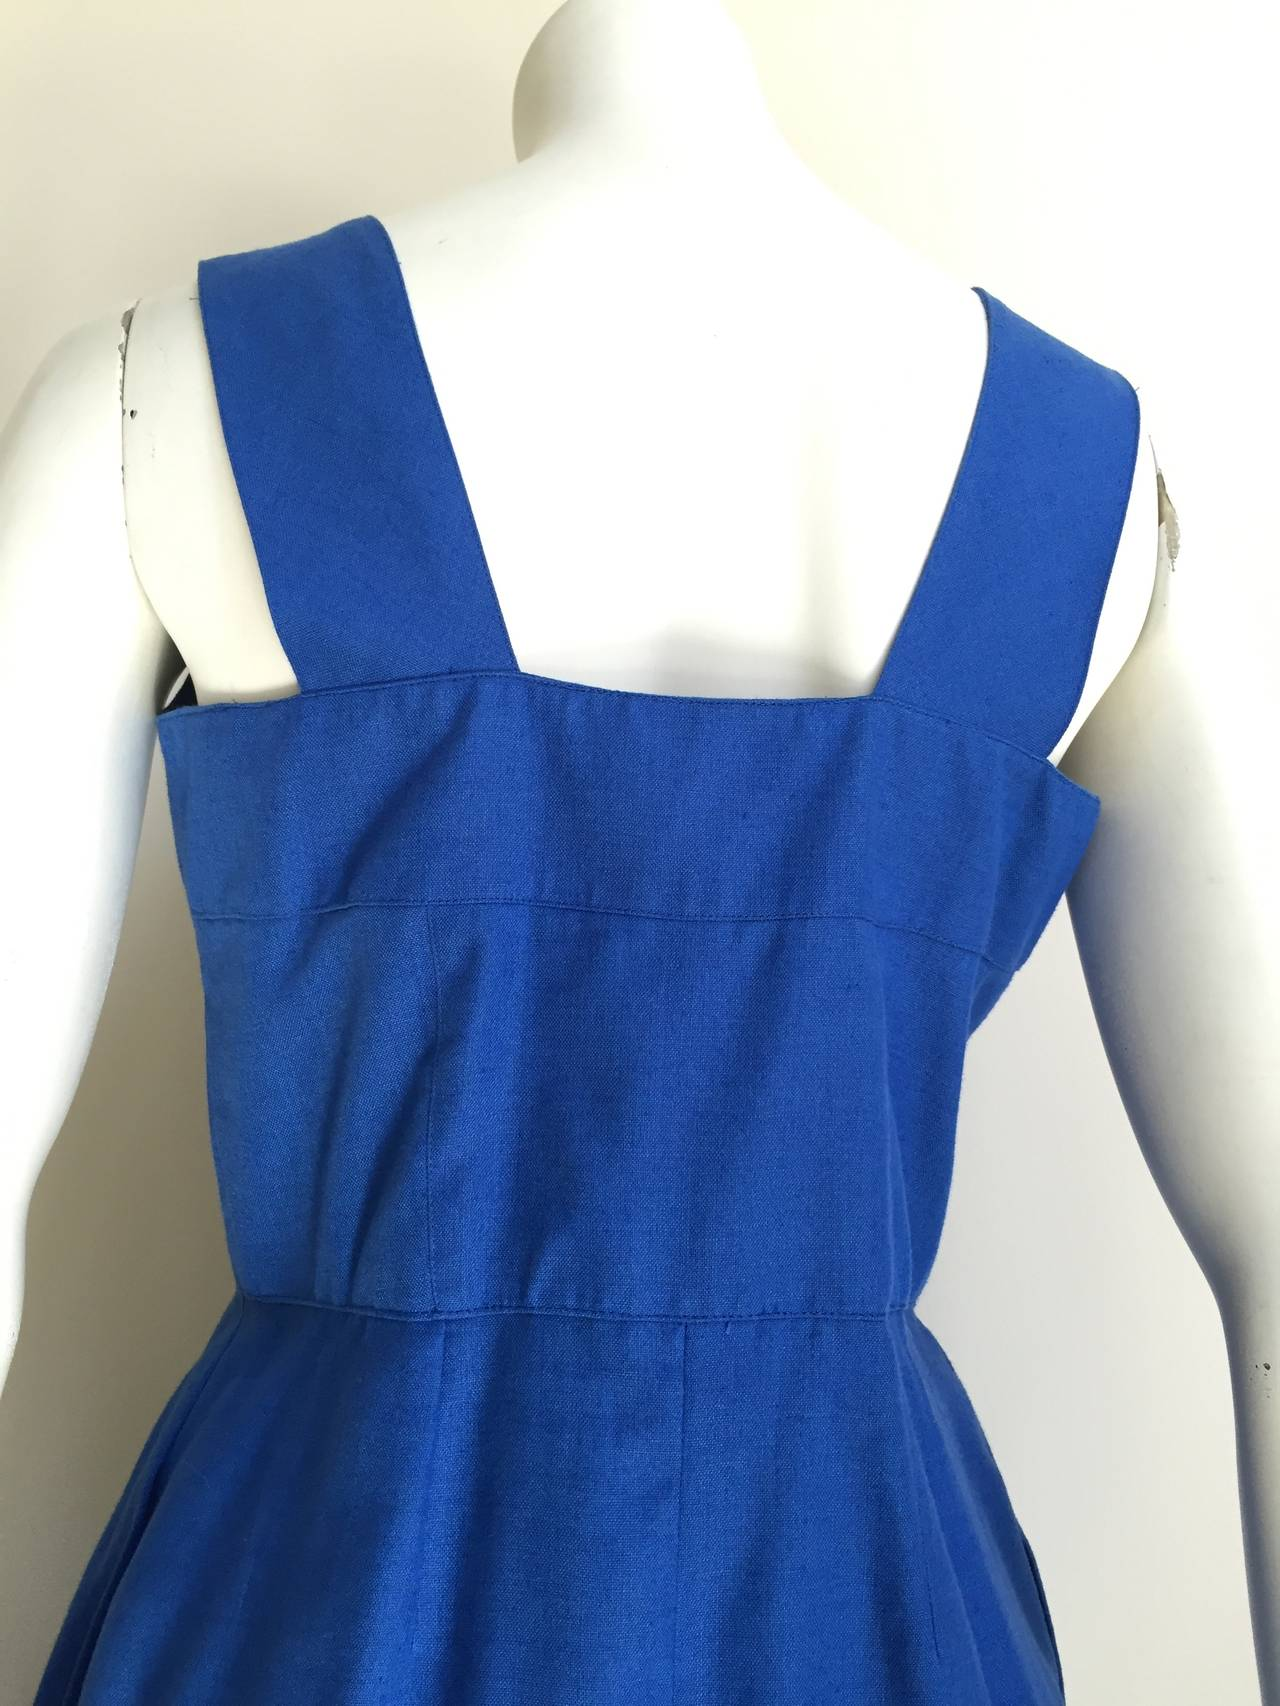 Guy Laroche Paris 80s blue dress with pockets size 6. 9